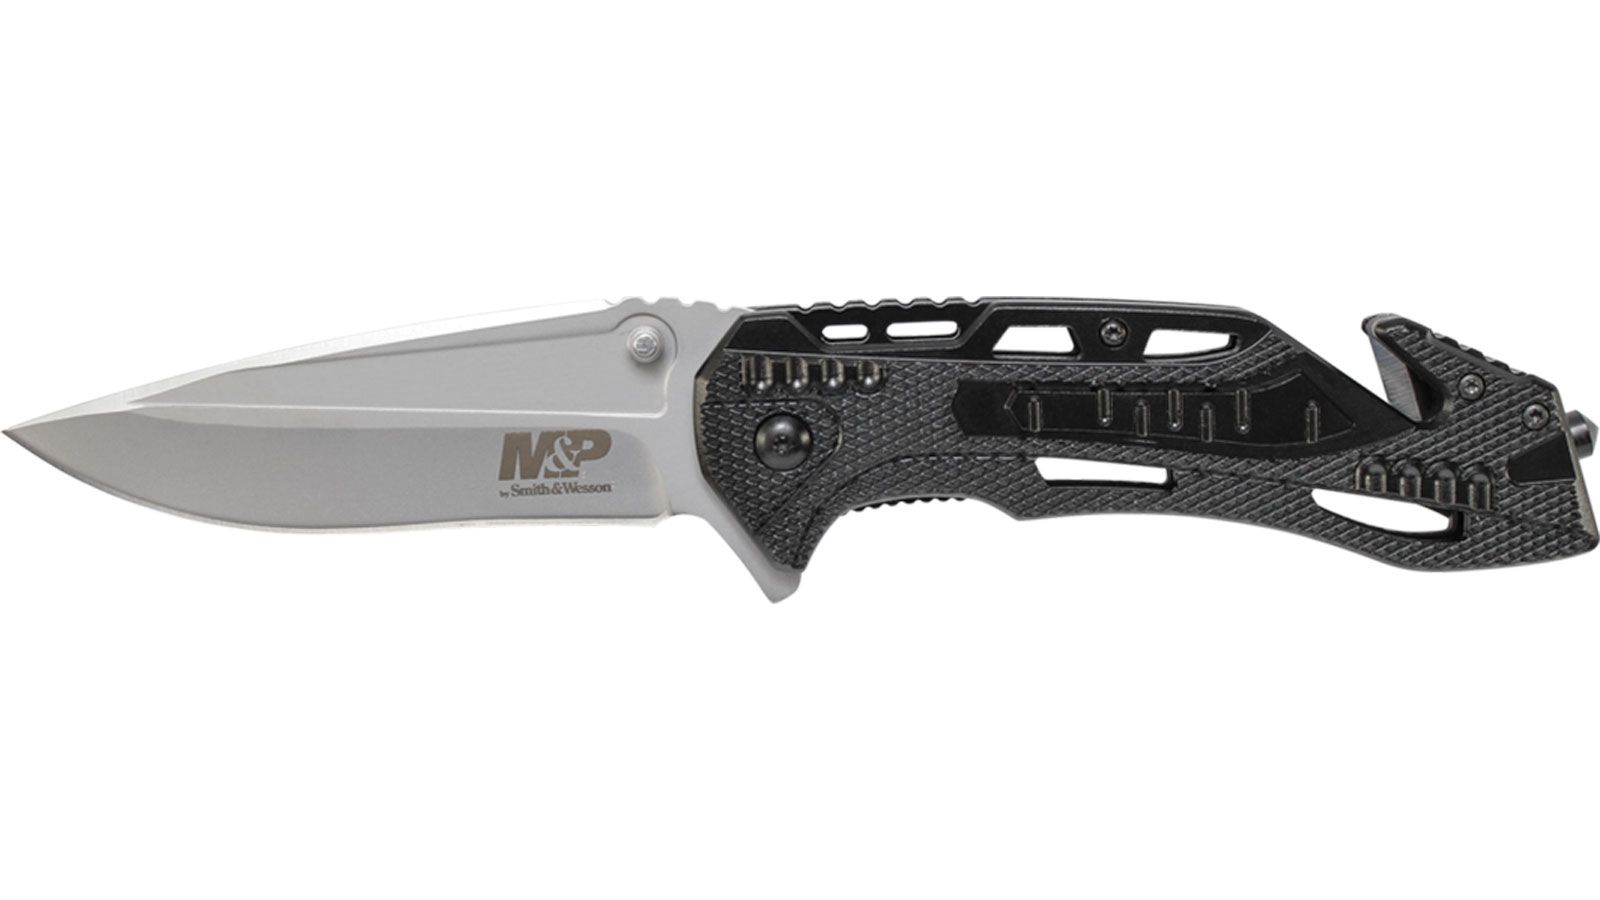 Smith and Wesson Wesson SWMP10 w|Ceramic Window Punch